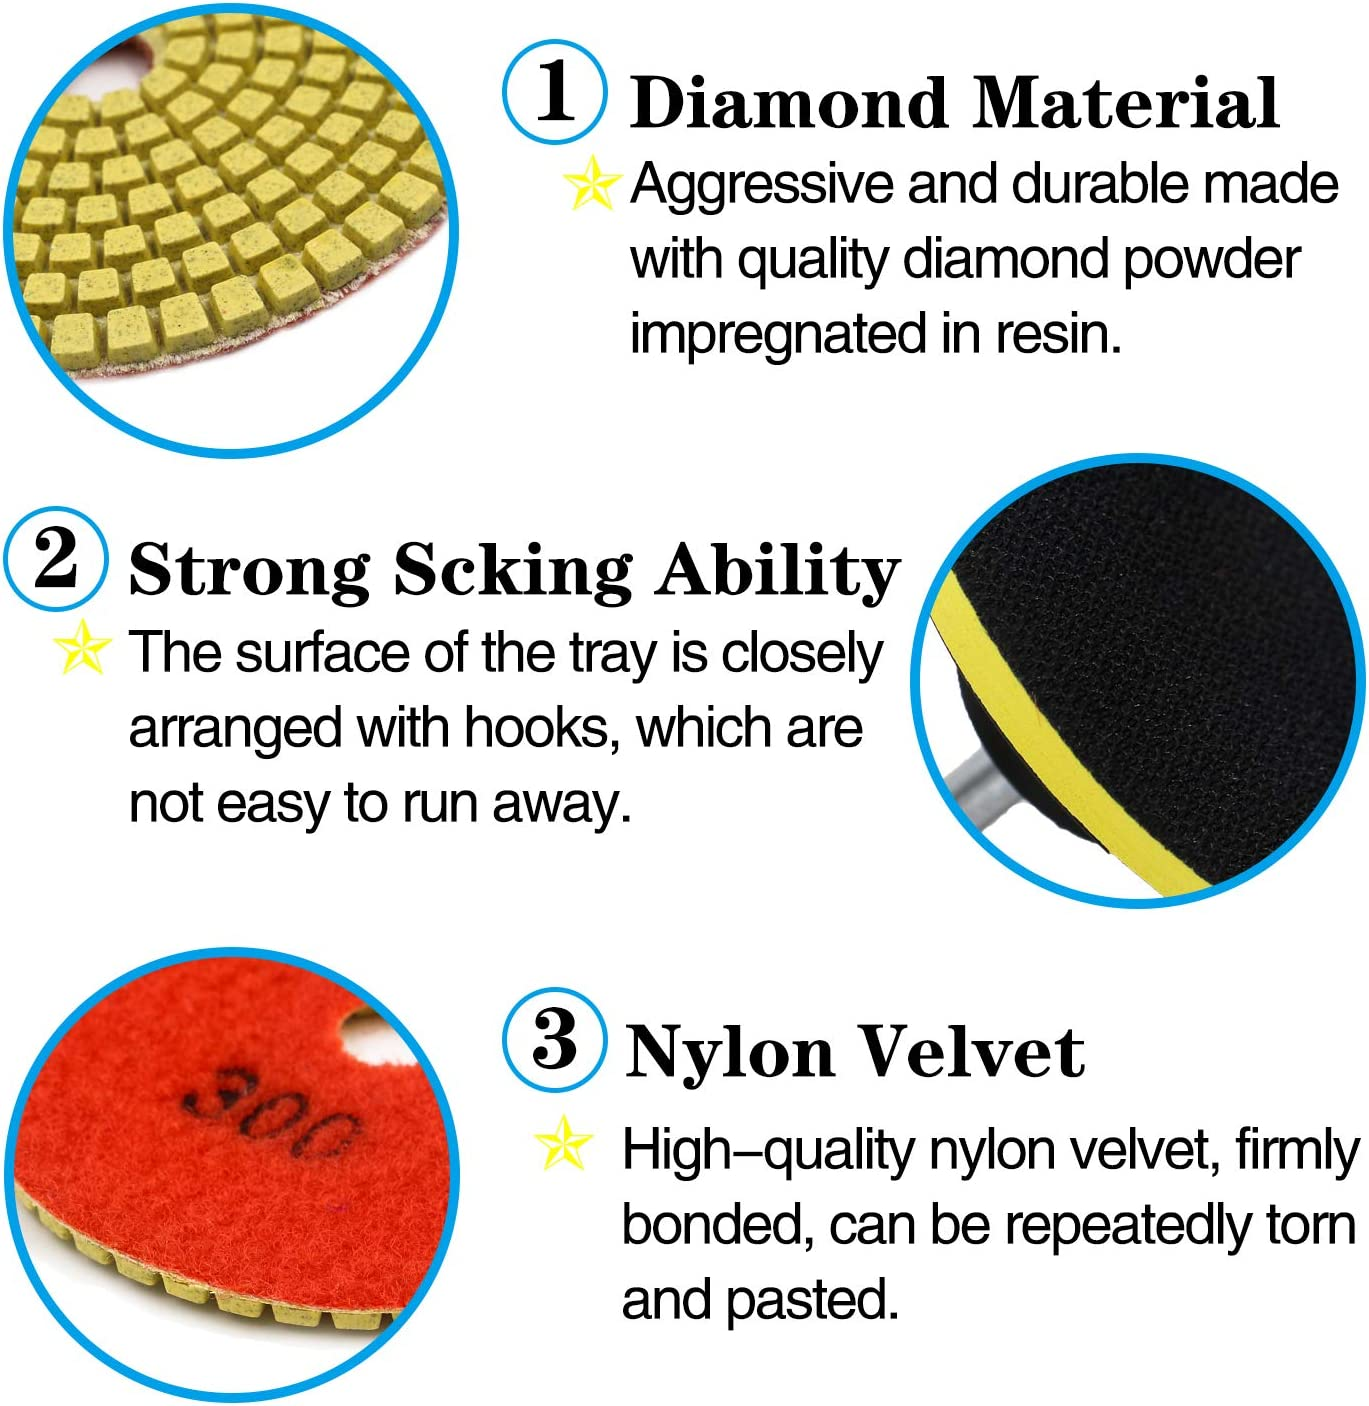 Tanzfrosch 4 inch Diamond Polishing Pads Set Wet//Dry Polishing Kit 10pcs 50#-3000# Grit Pads with 2pcs Hook and Loop Backer Pads for Granite Stone Concrete Marble Floor Grinder or Polisher 12 Pack